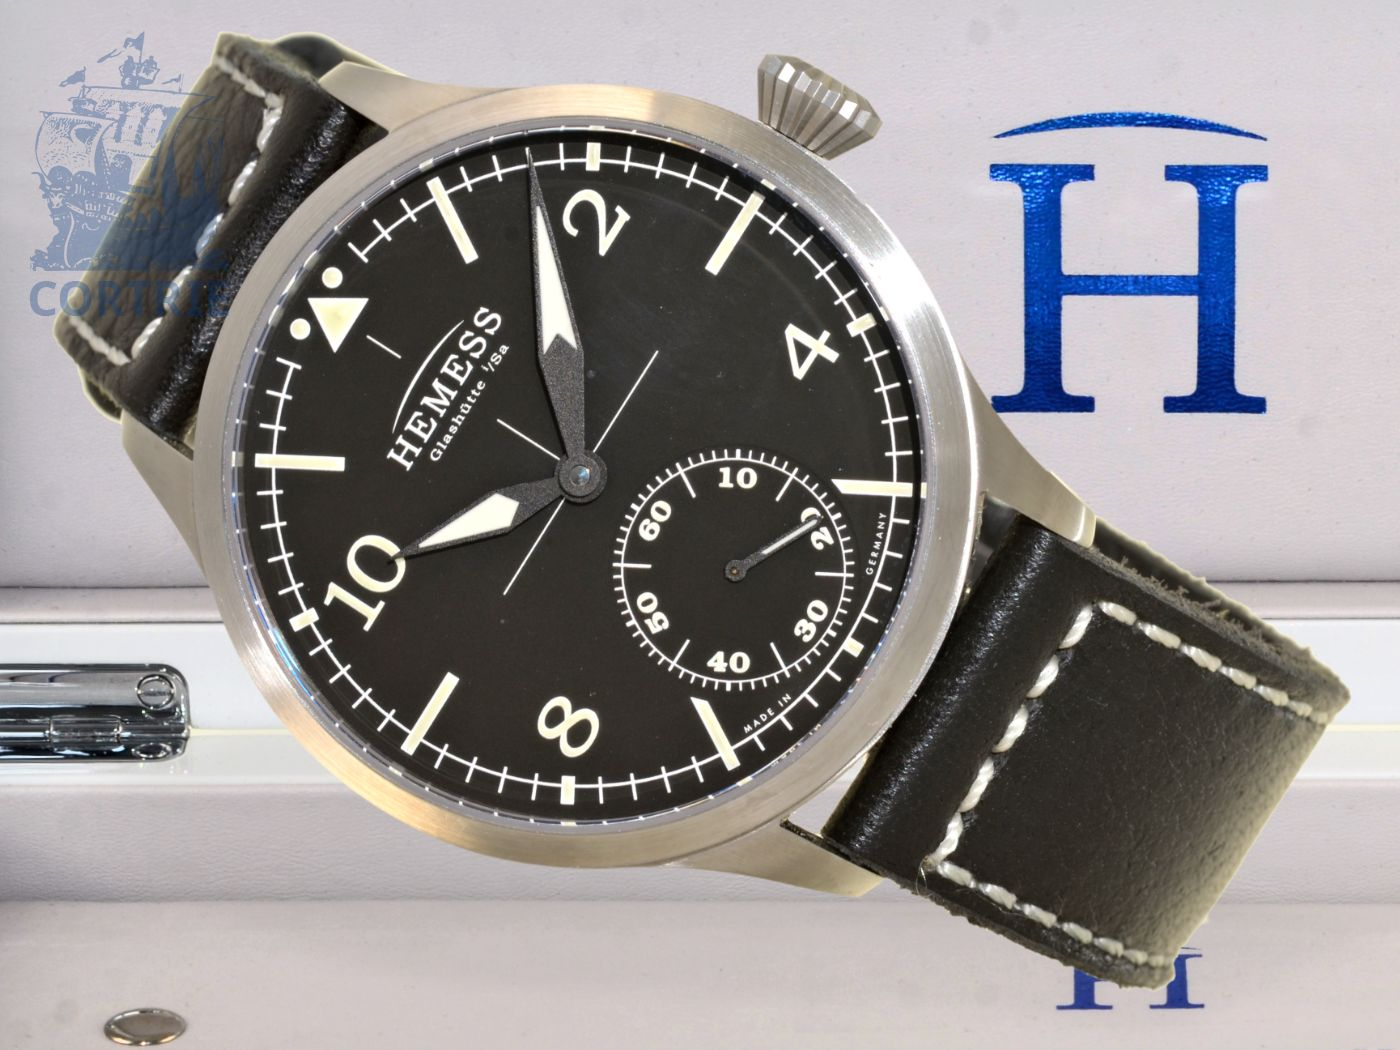 Wristwatch: high-class Glashütte pilot's watch Pilotuhr Hemess, reference A01063, unused, with original box and certificates-